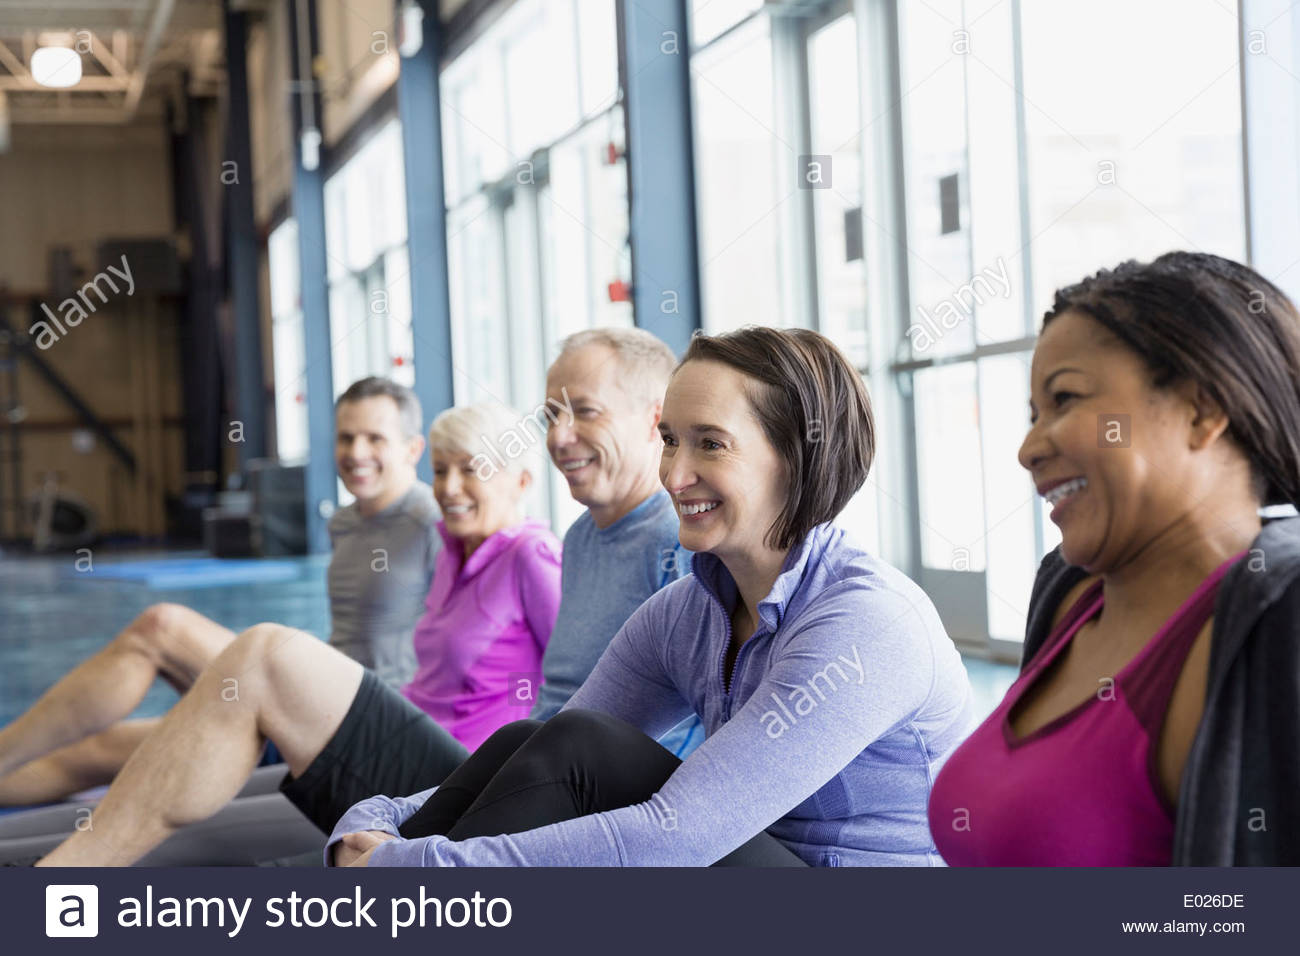 Smiling group in exercise class at gym - Stock Image